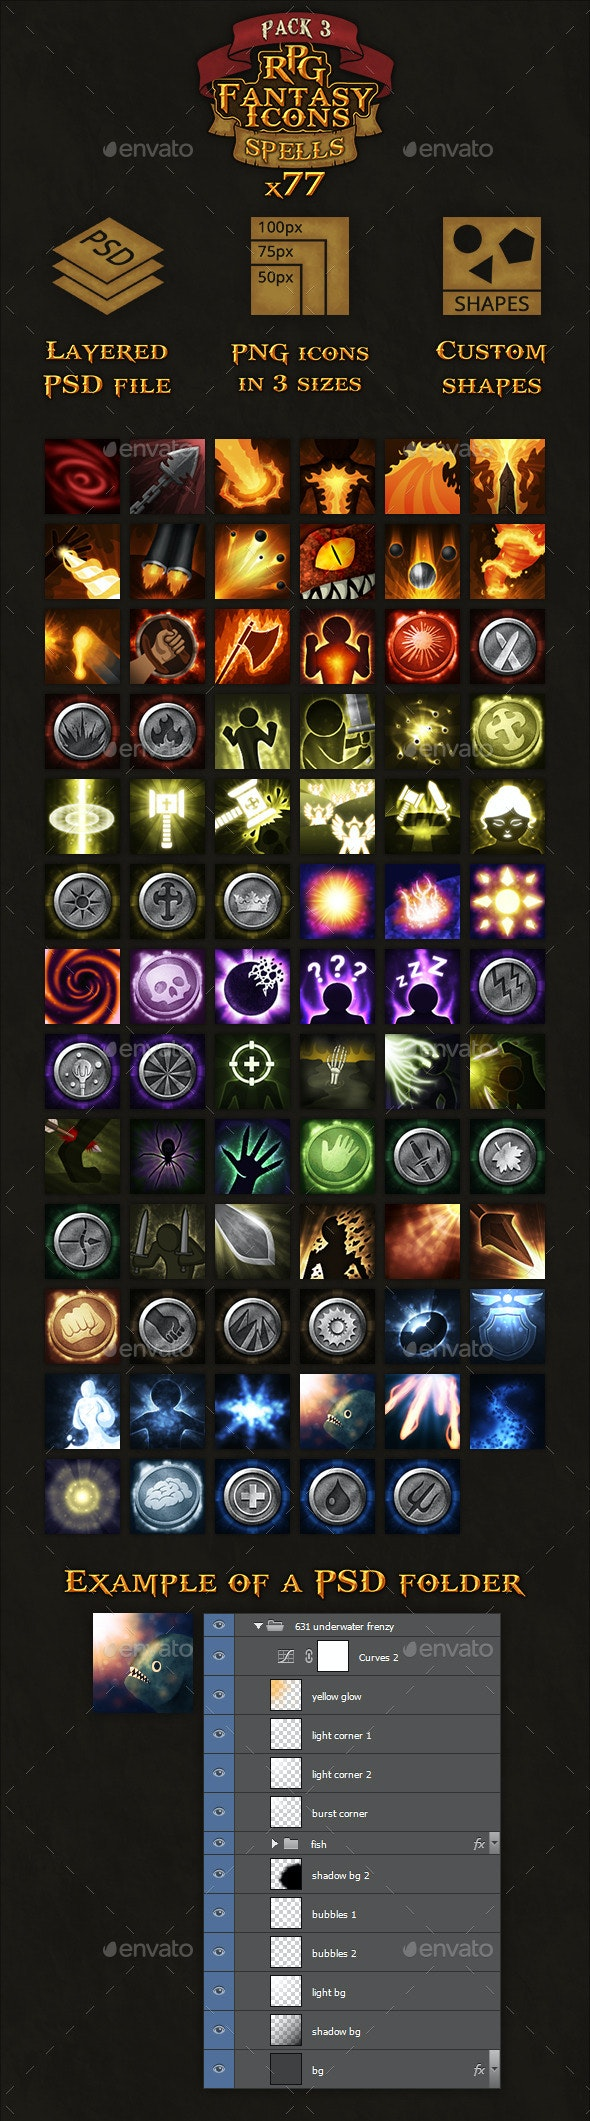 77 RPG Fantasy Spells Icons - Miscellaneous Game Assets